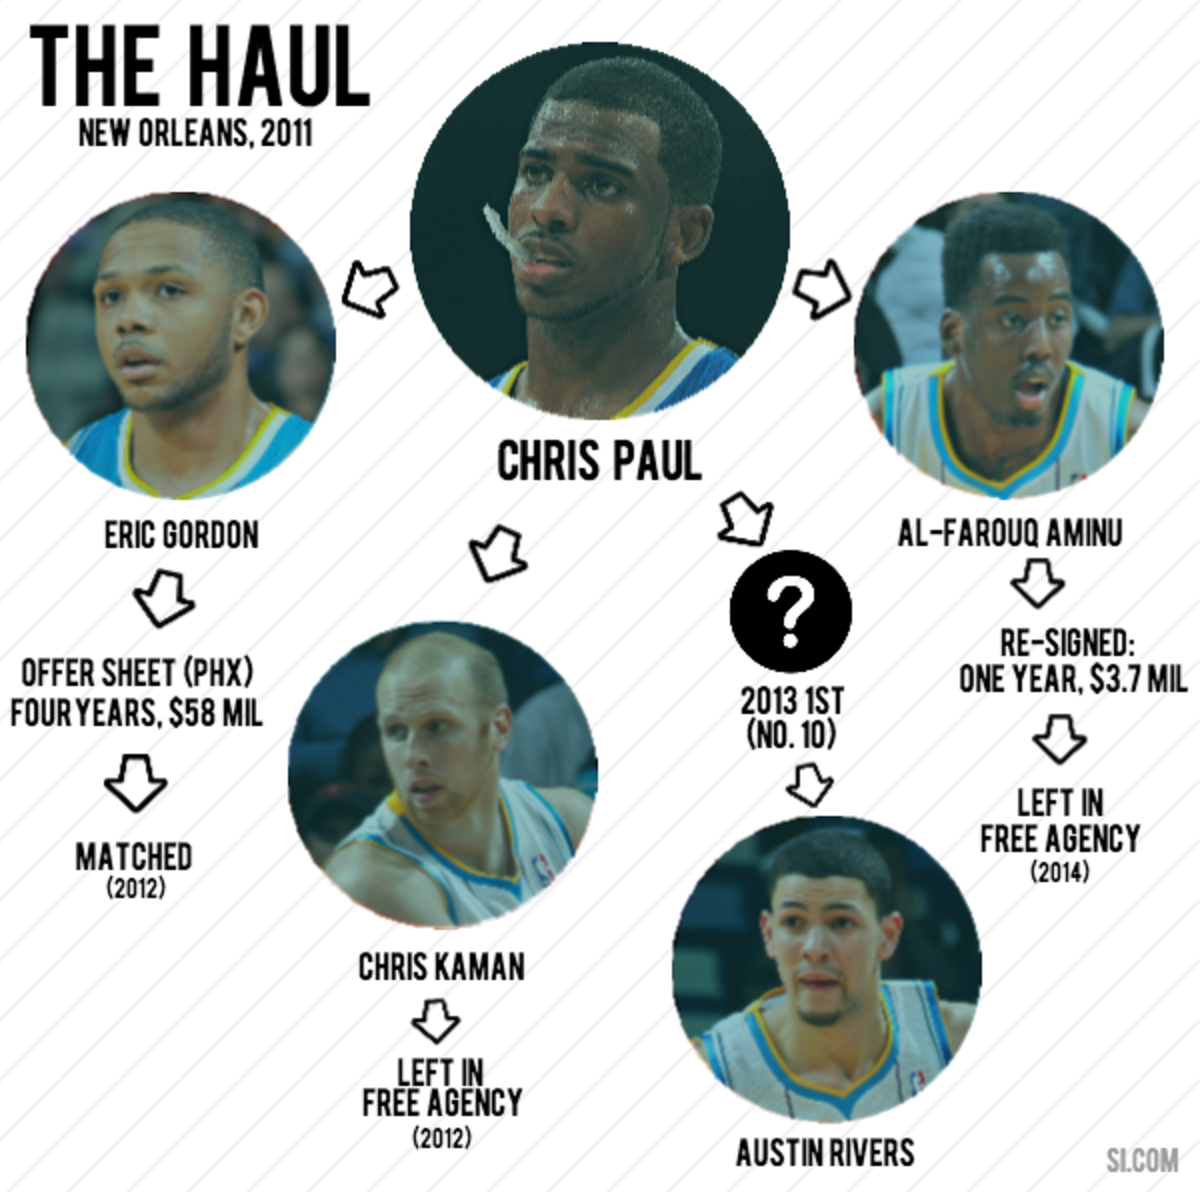 chris paul infographic